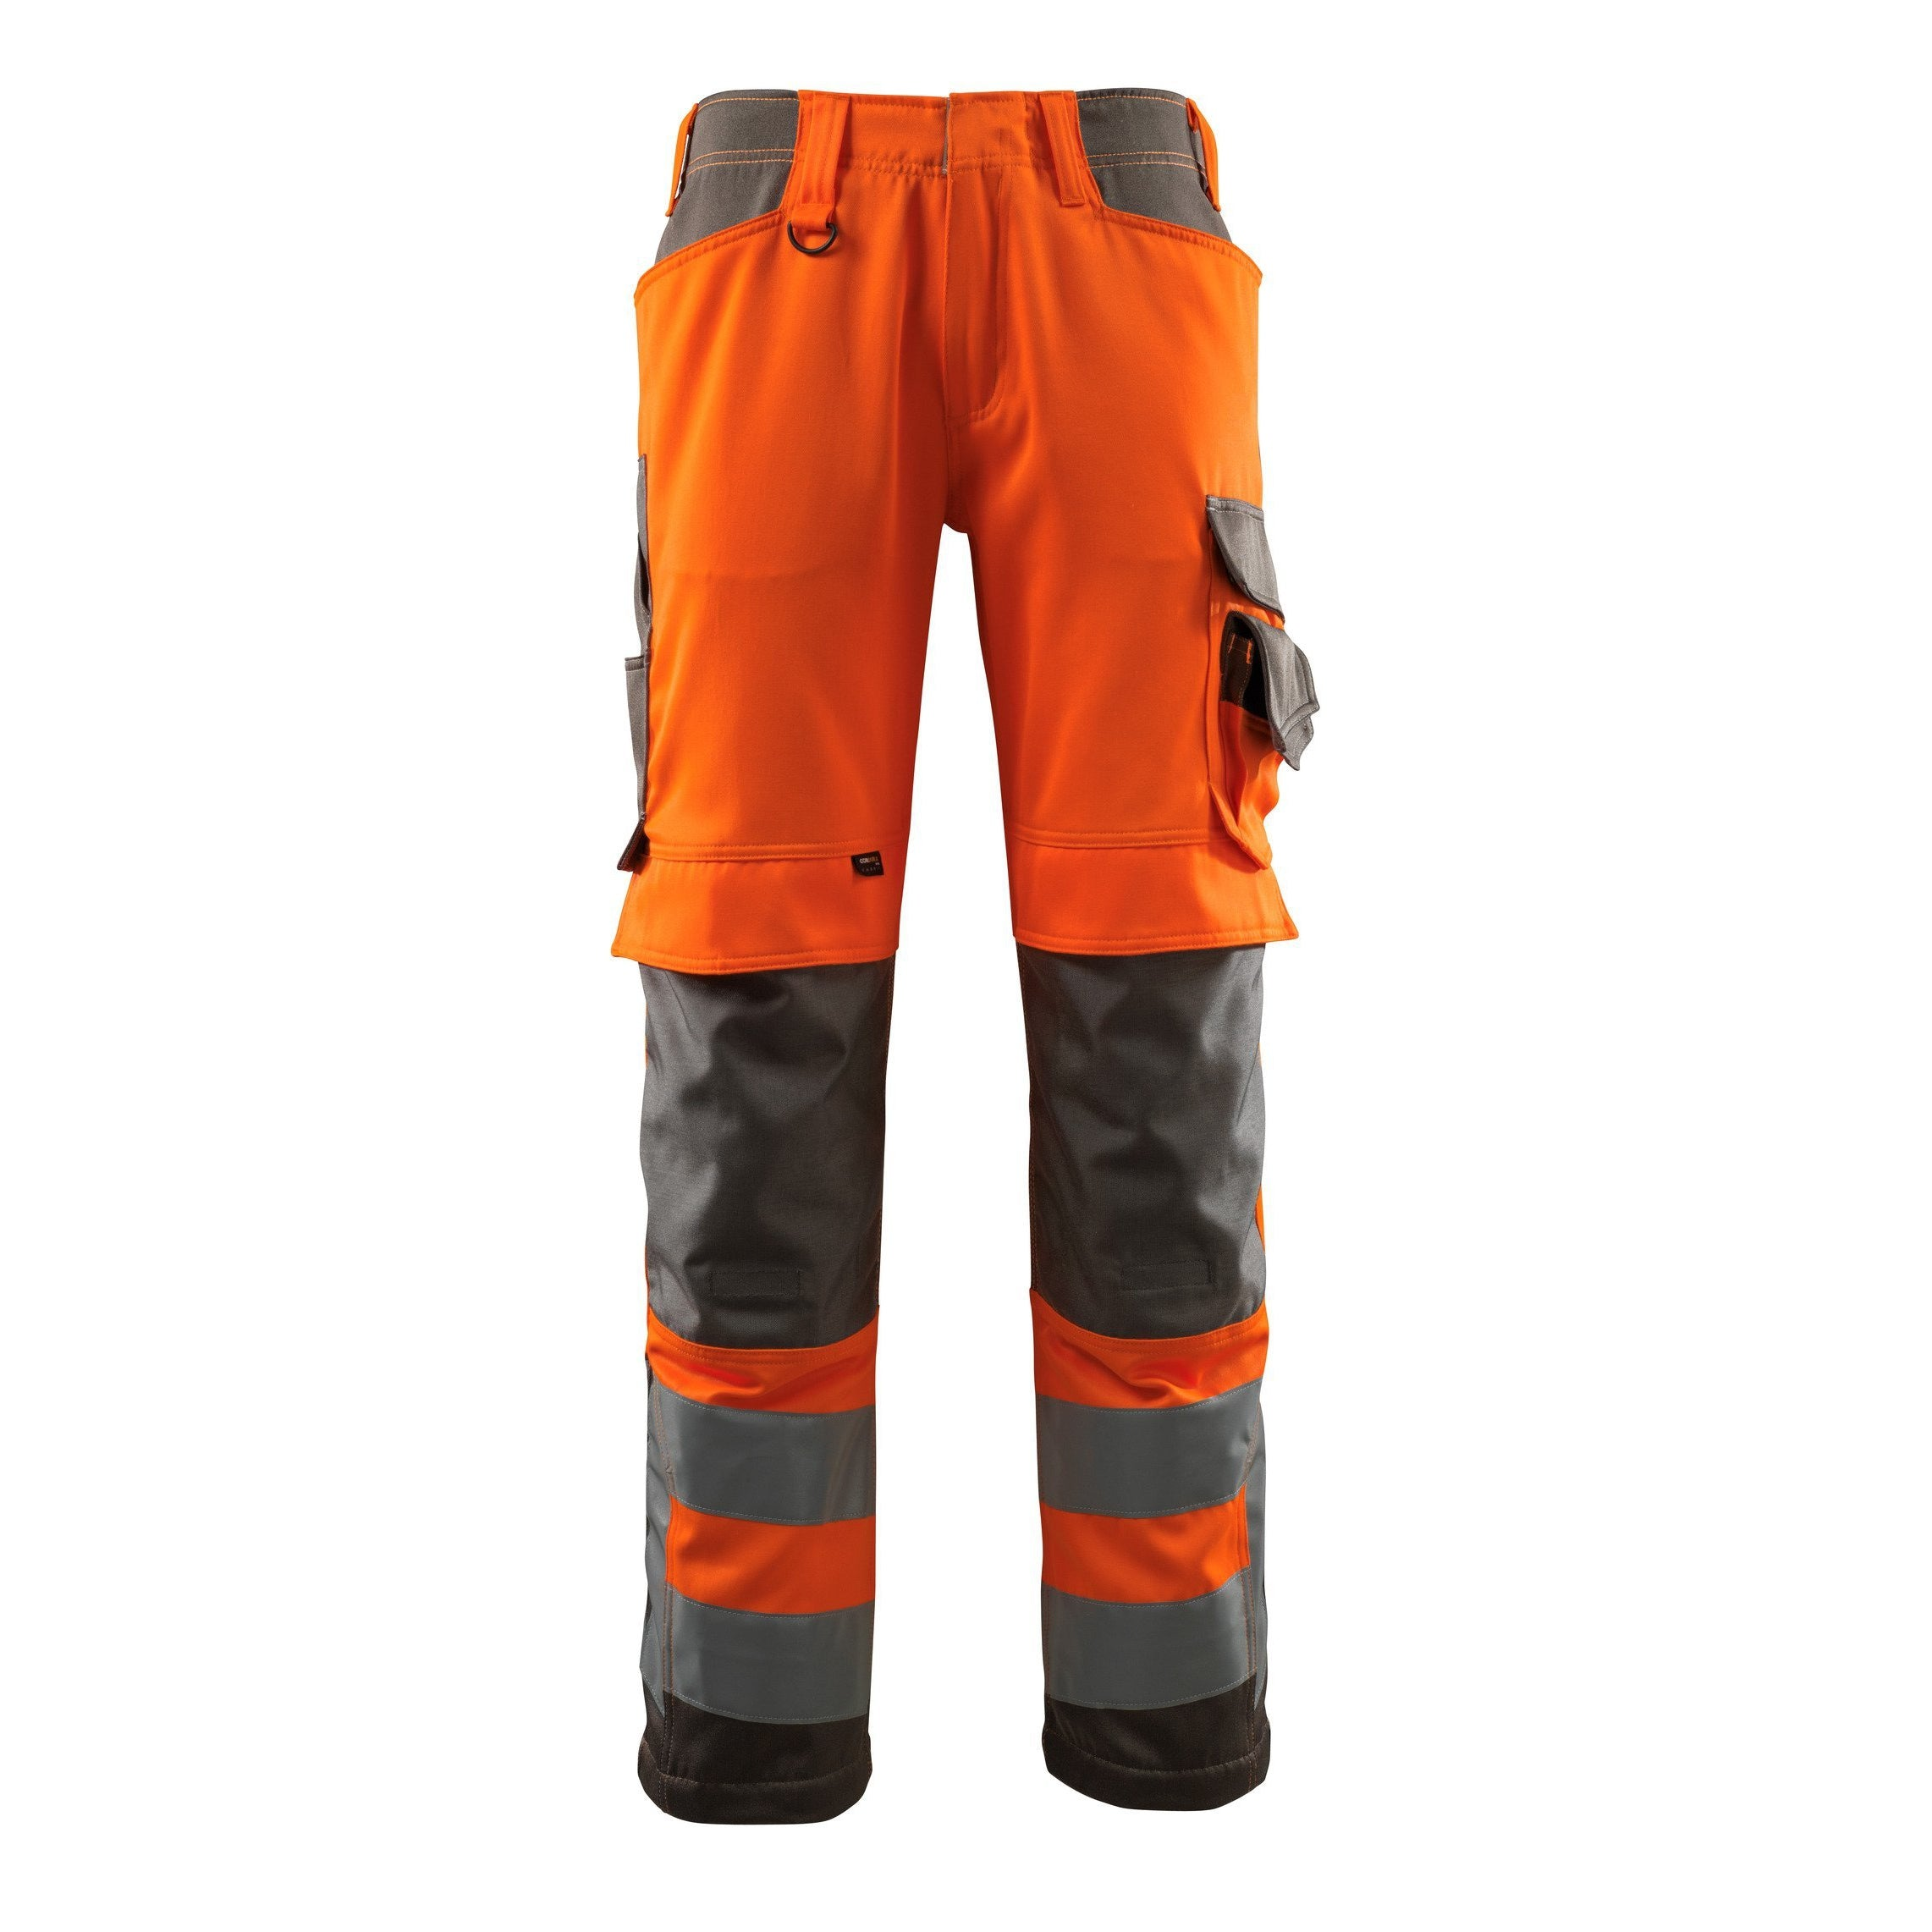 Mascot Kendal Safe Supreme Trousers With Kneepad Pockets